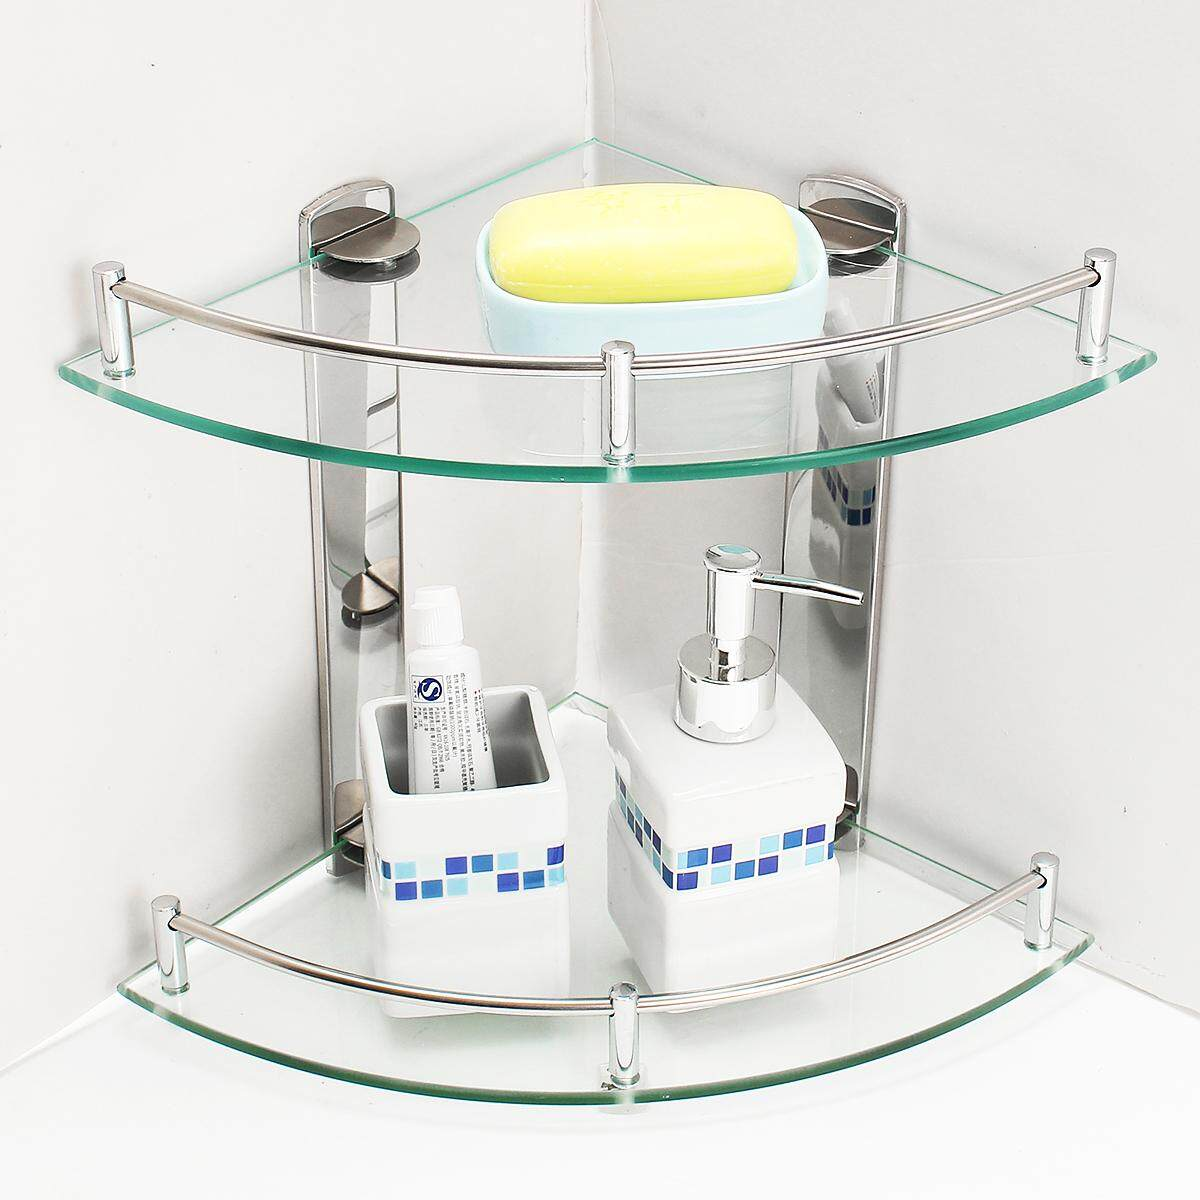 Bathroom Corner Shelf 2 Tier Shelves Glass Shower Wall Mounted Storage Shelving [25cm] By Audew.